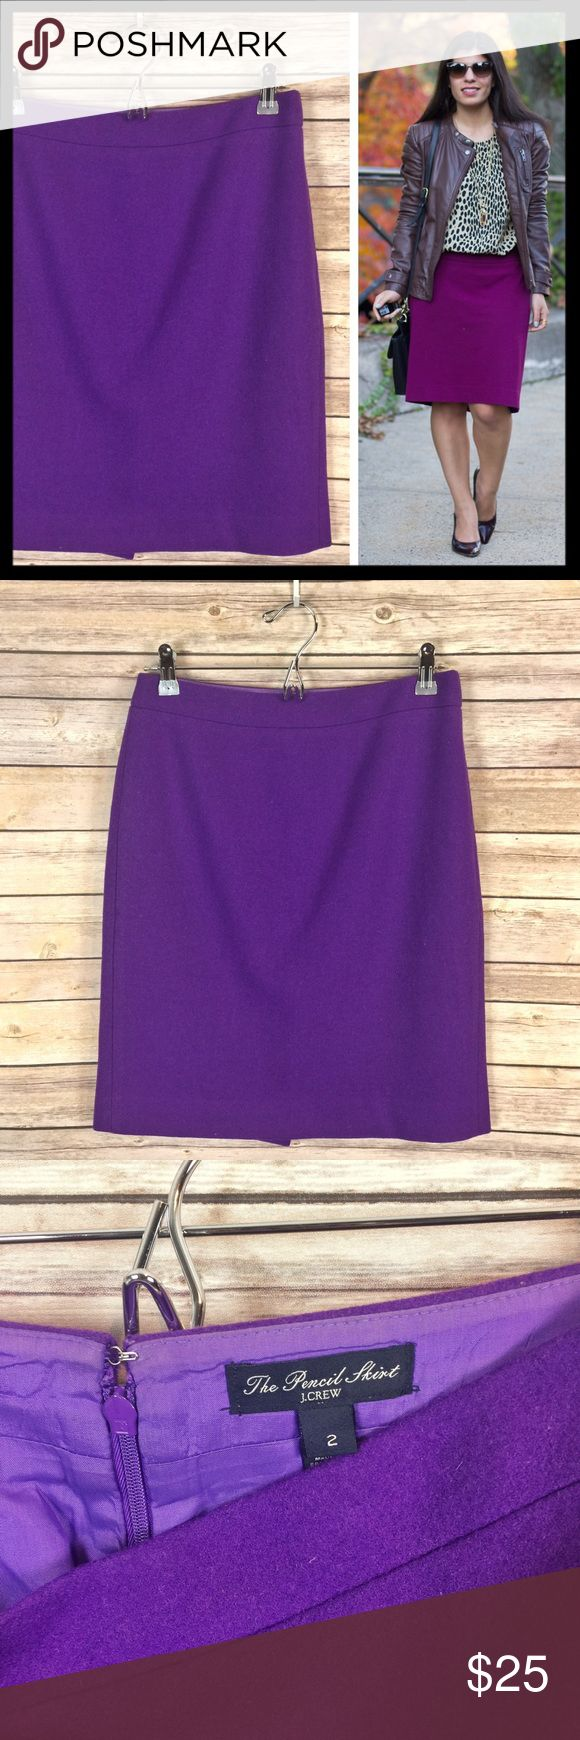 """j. crew // double serge wool purple pencil skirt Our pencil skirt is sharp, to the point and meticulously seamed. Double-serge wool has a weightier feel that's perfect for cooler days. Back zip. Wool/viscose. Lined. 20.5"""" long. Color is pretty medium purple (refer to photos on hanger since modeled photos vary slightly). From J. Crew Factory. Gently worn and in good preowned condition. J. Crew Skirts Pencil"""